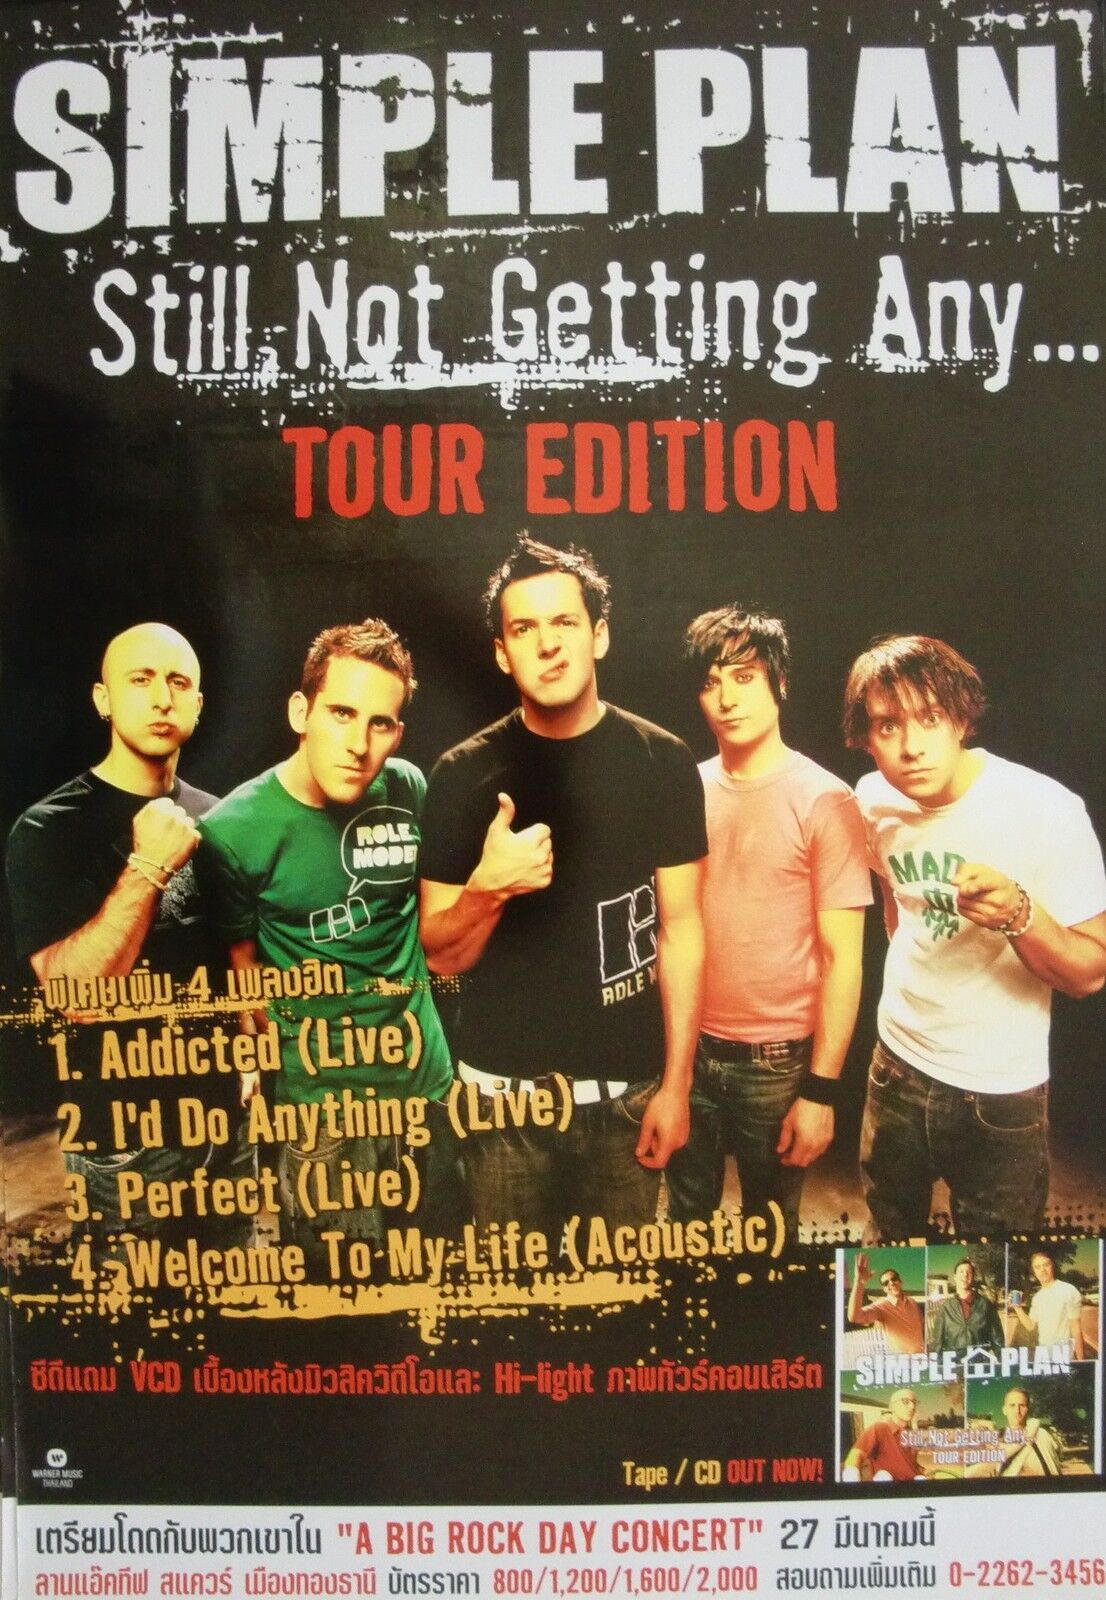 Still Not Feeling It M I A: SIMPLE PLAN Tour Dates 2016